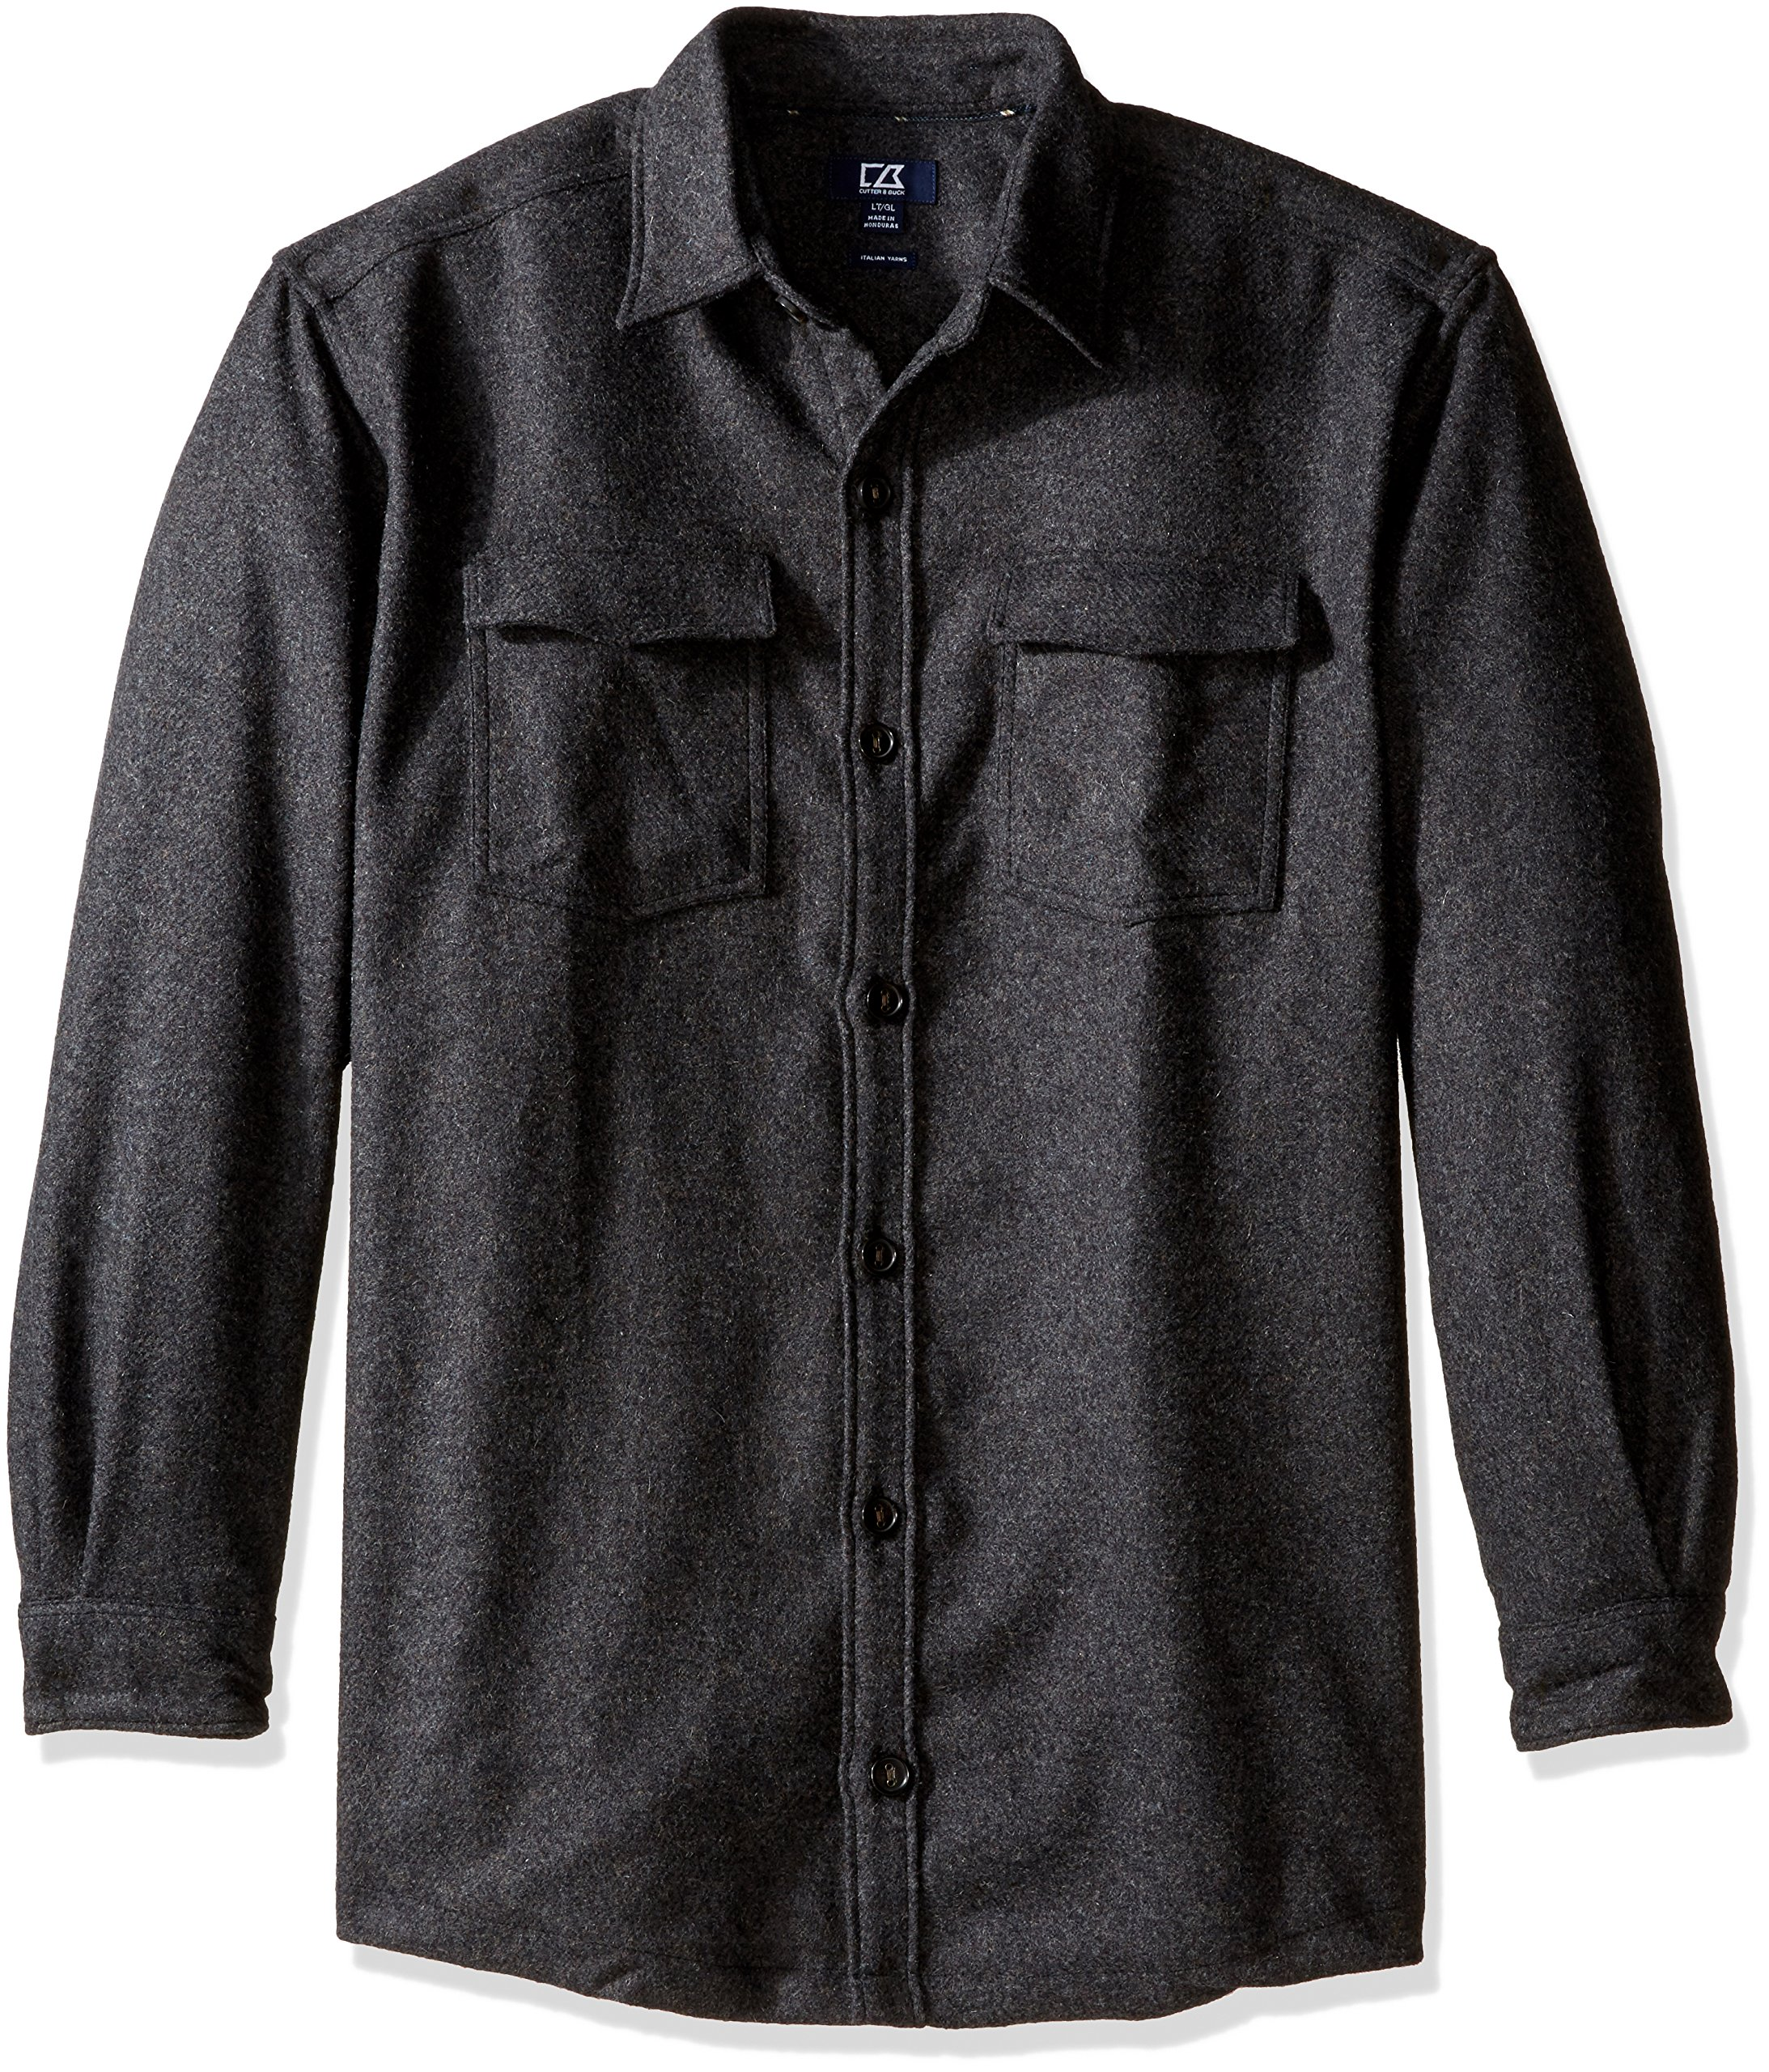 Cutter & Buck Men's Big and Tall Long Sleeve Virany Shirt Jacket, Black, 2XT